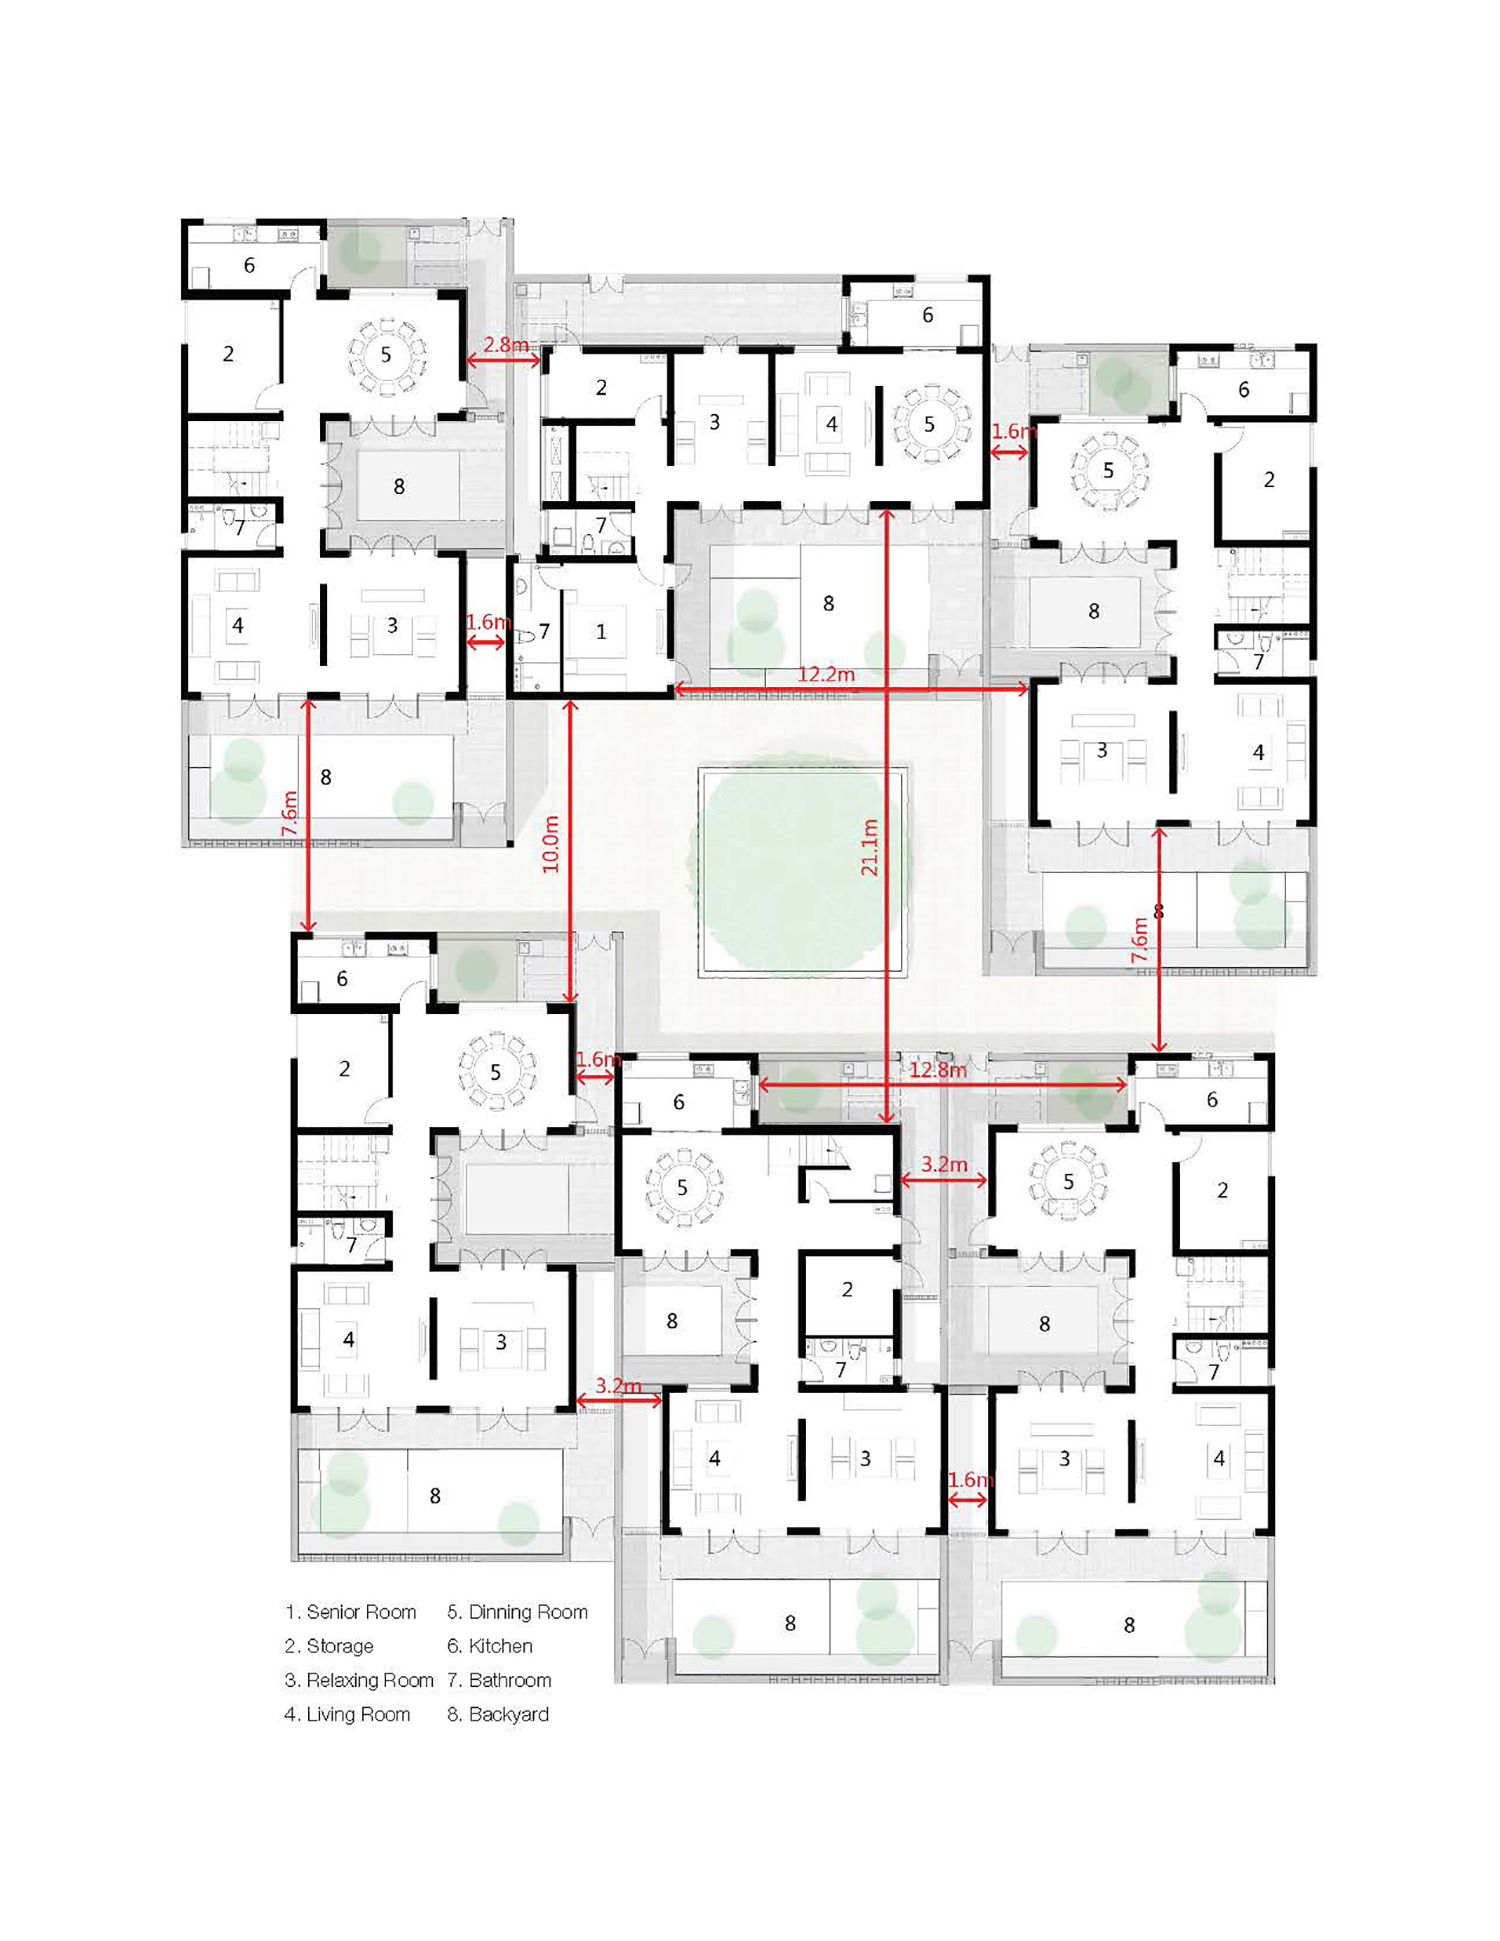 586b2085e58ecee contemporary rural cluster dongziguan affordable housing for relocalized farmers in fuyang hangzhou gad ground floor plan